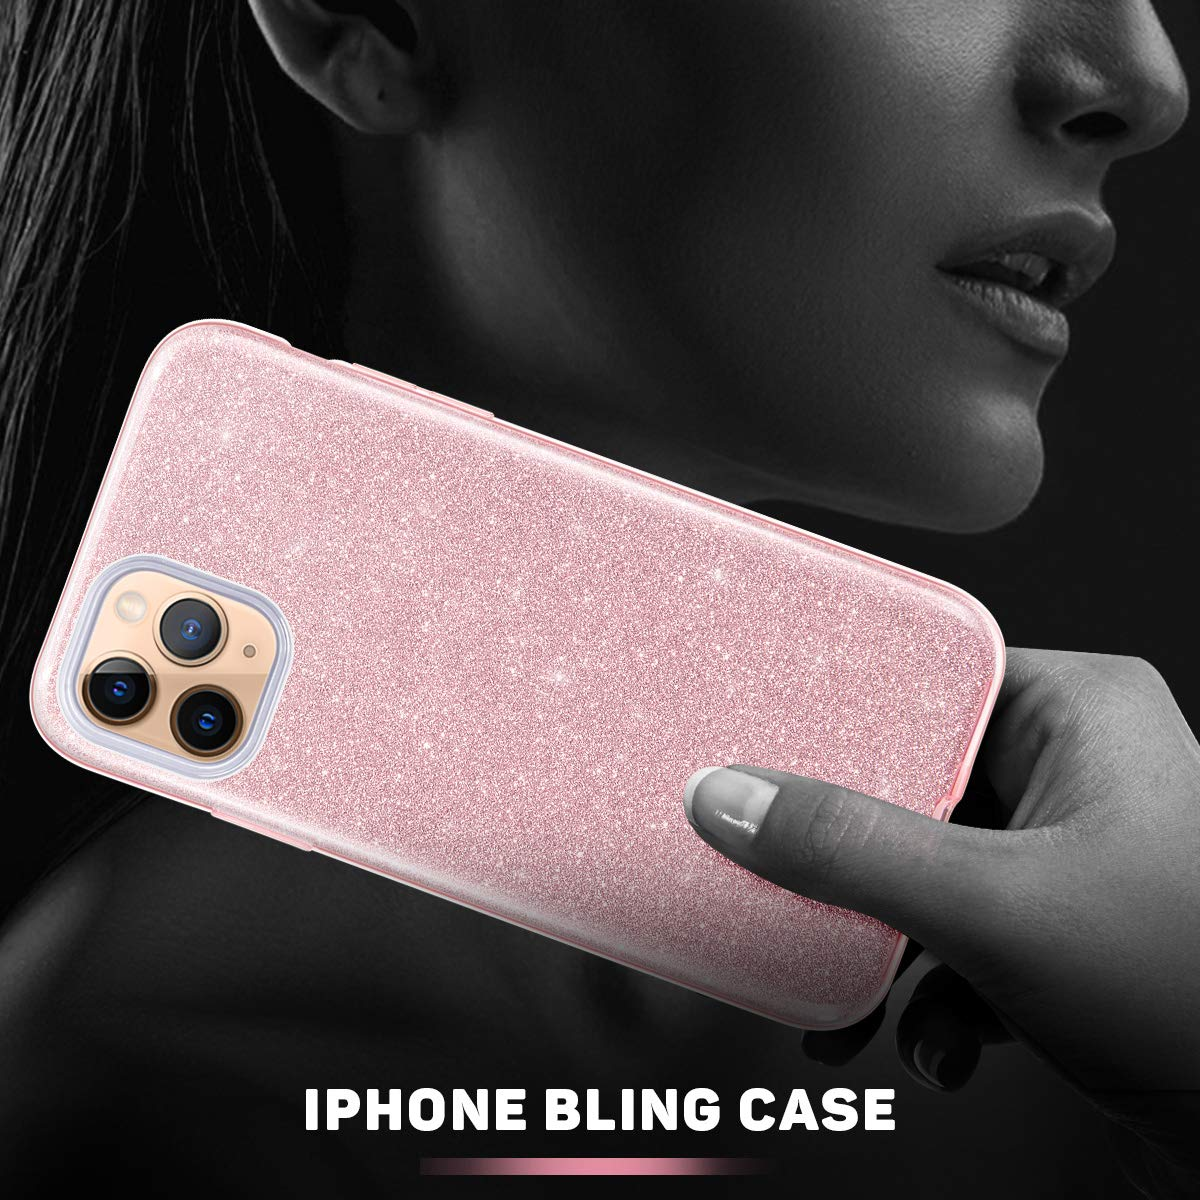 Anti-Slick//Protective Case for iphone 11 Pro Max 6.5Inch-Gold MATEPROX iphone 11 Pro Max Case Glitter Sparkle Sparkly Bling Cute,3 Layer Hybrid